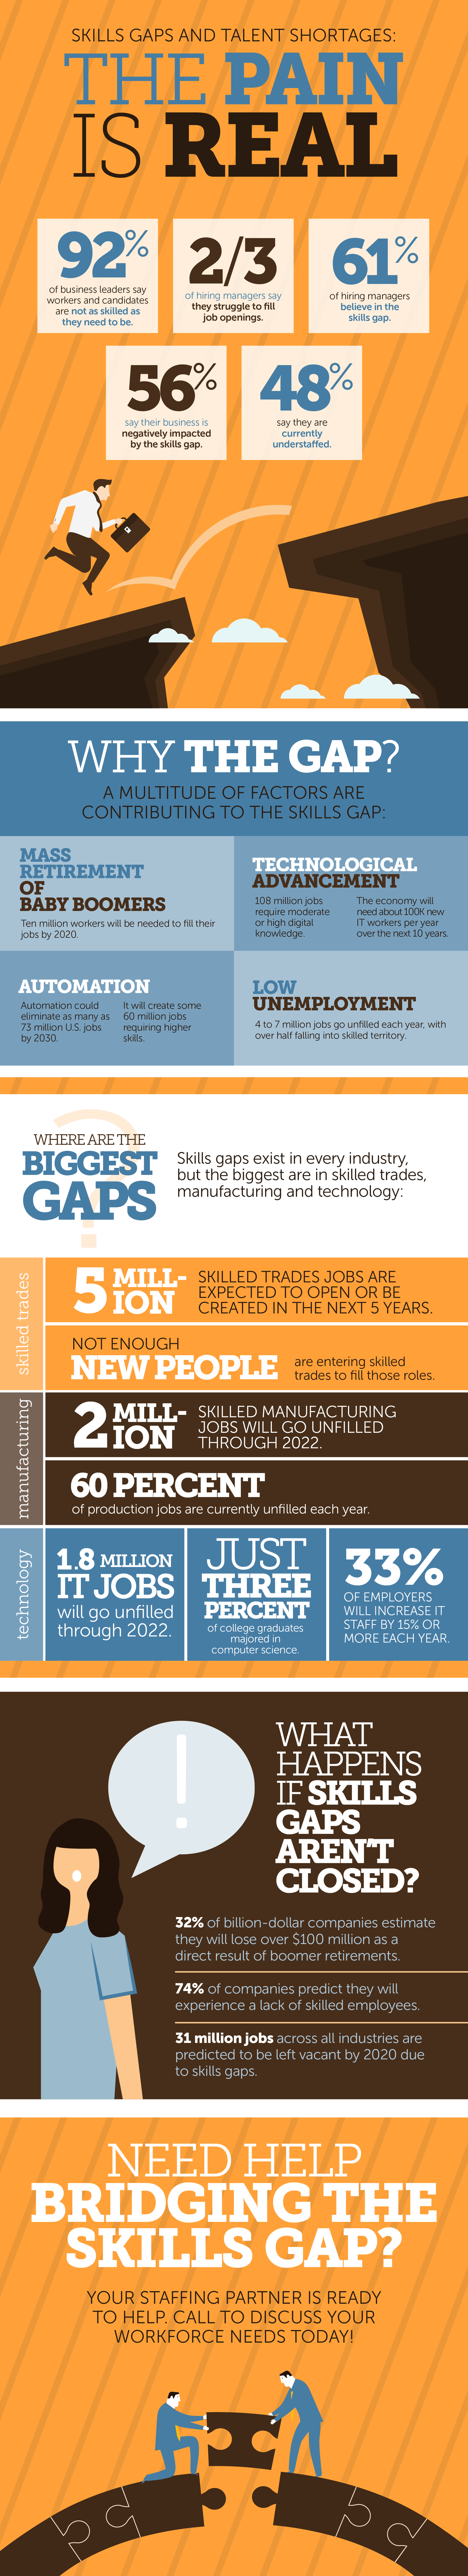 Skills Gaps and Talent Shortages: The Pain is Real